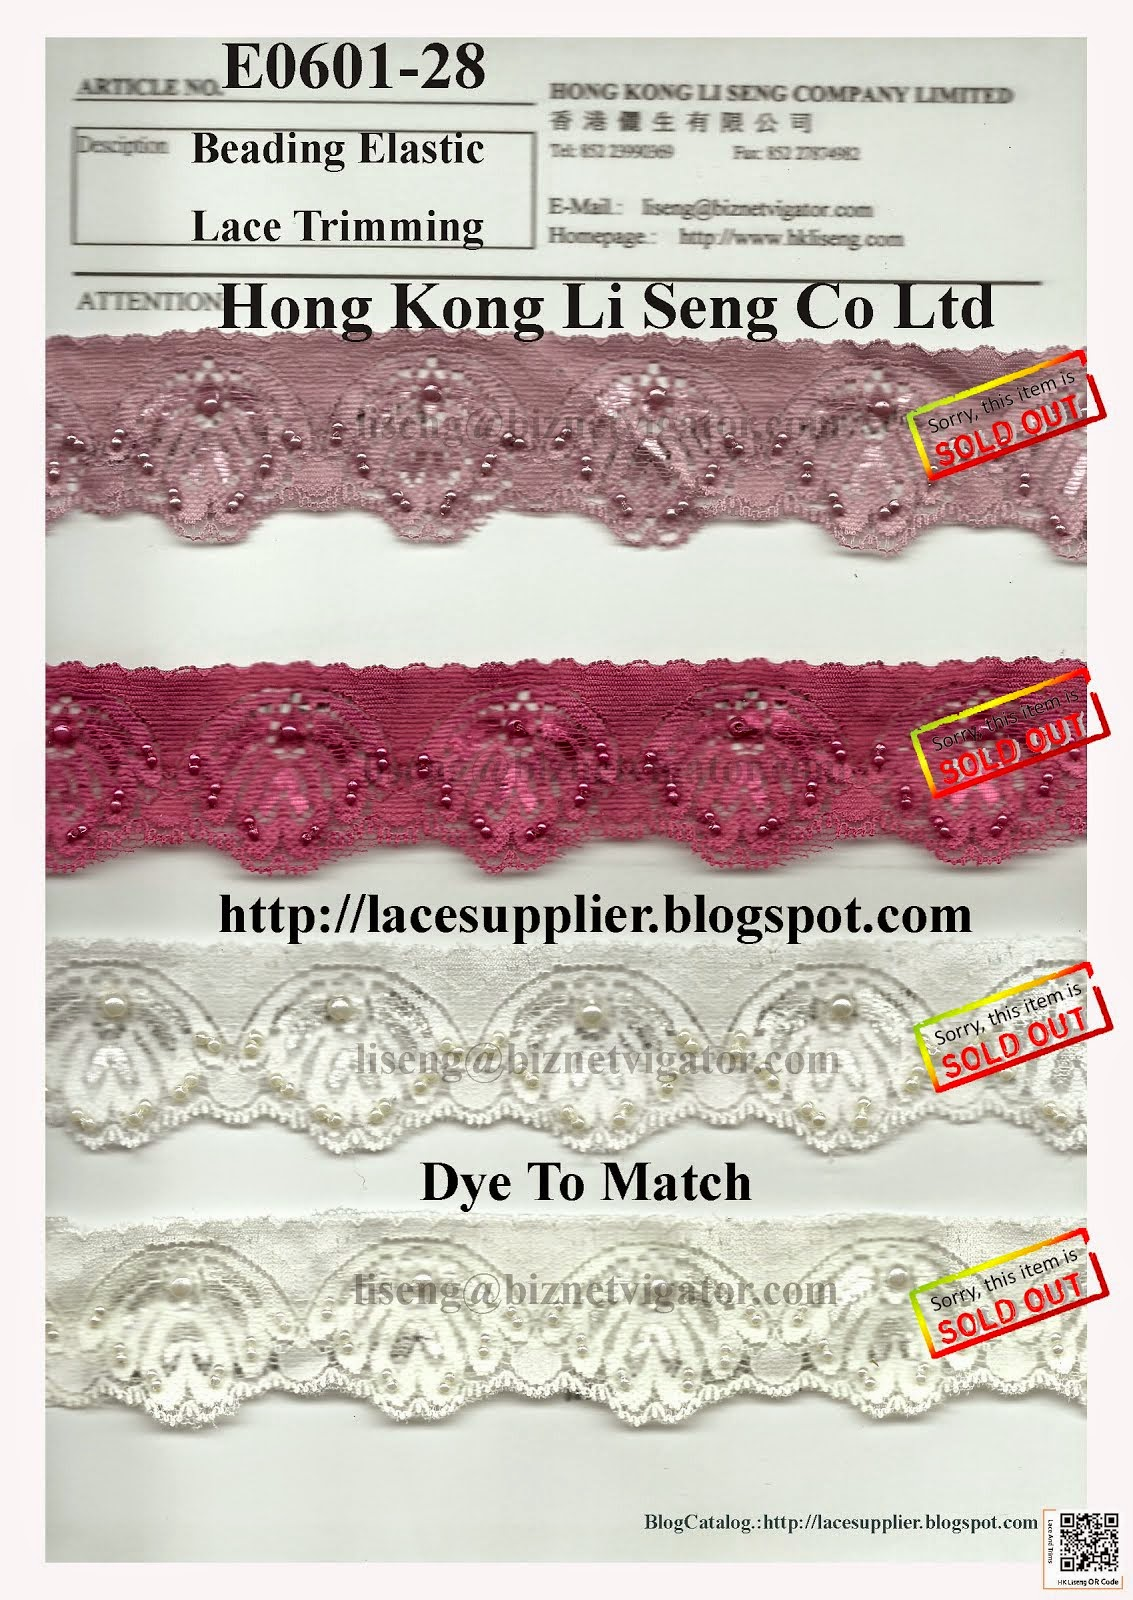 Beading Elastic Lace Trimming Manufacturer - Hong Kong Li Seng Co Ltd